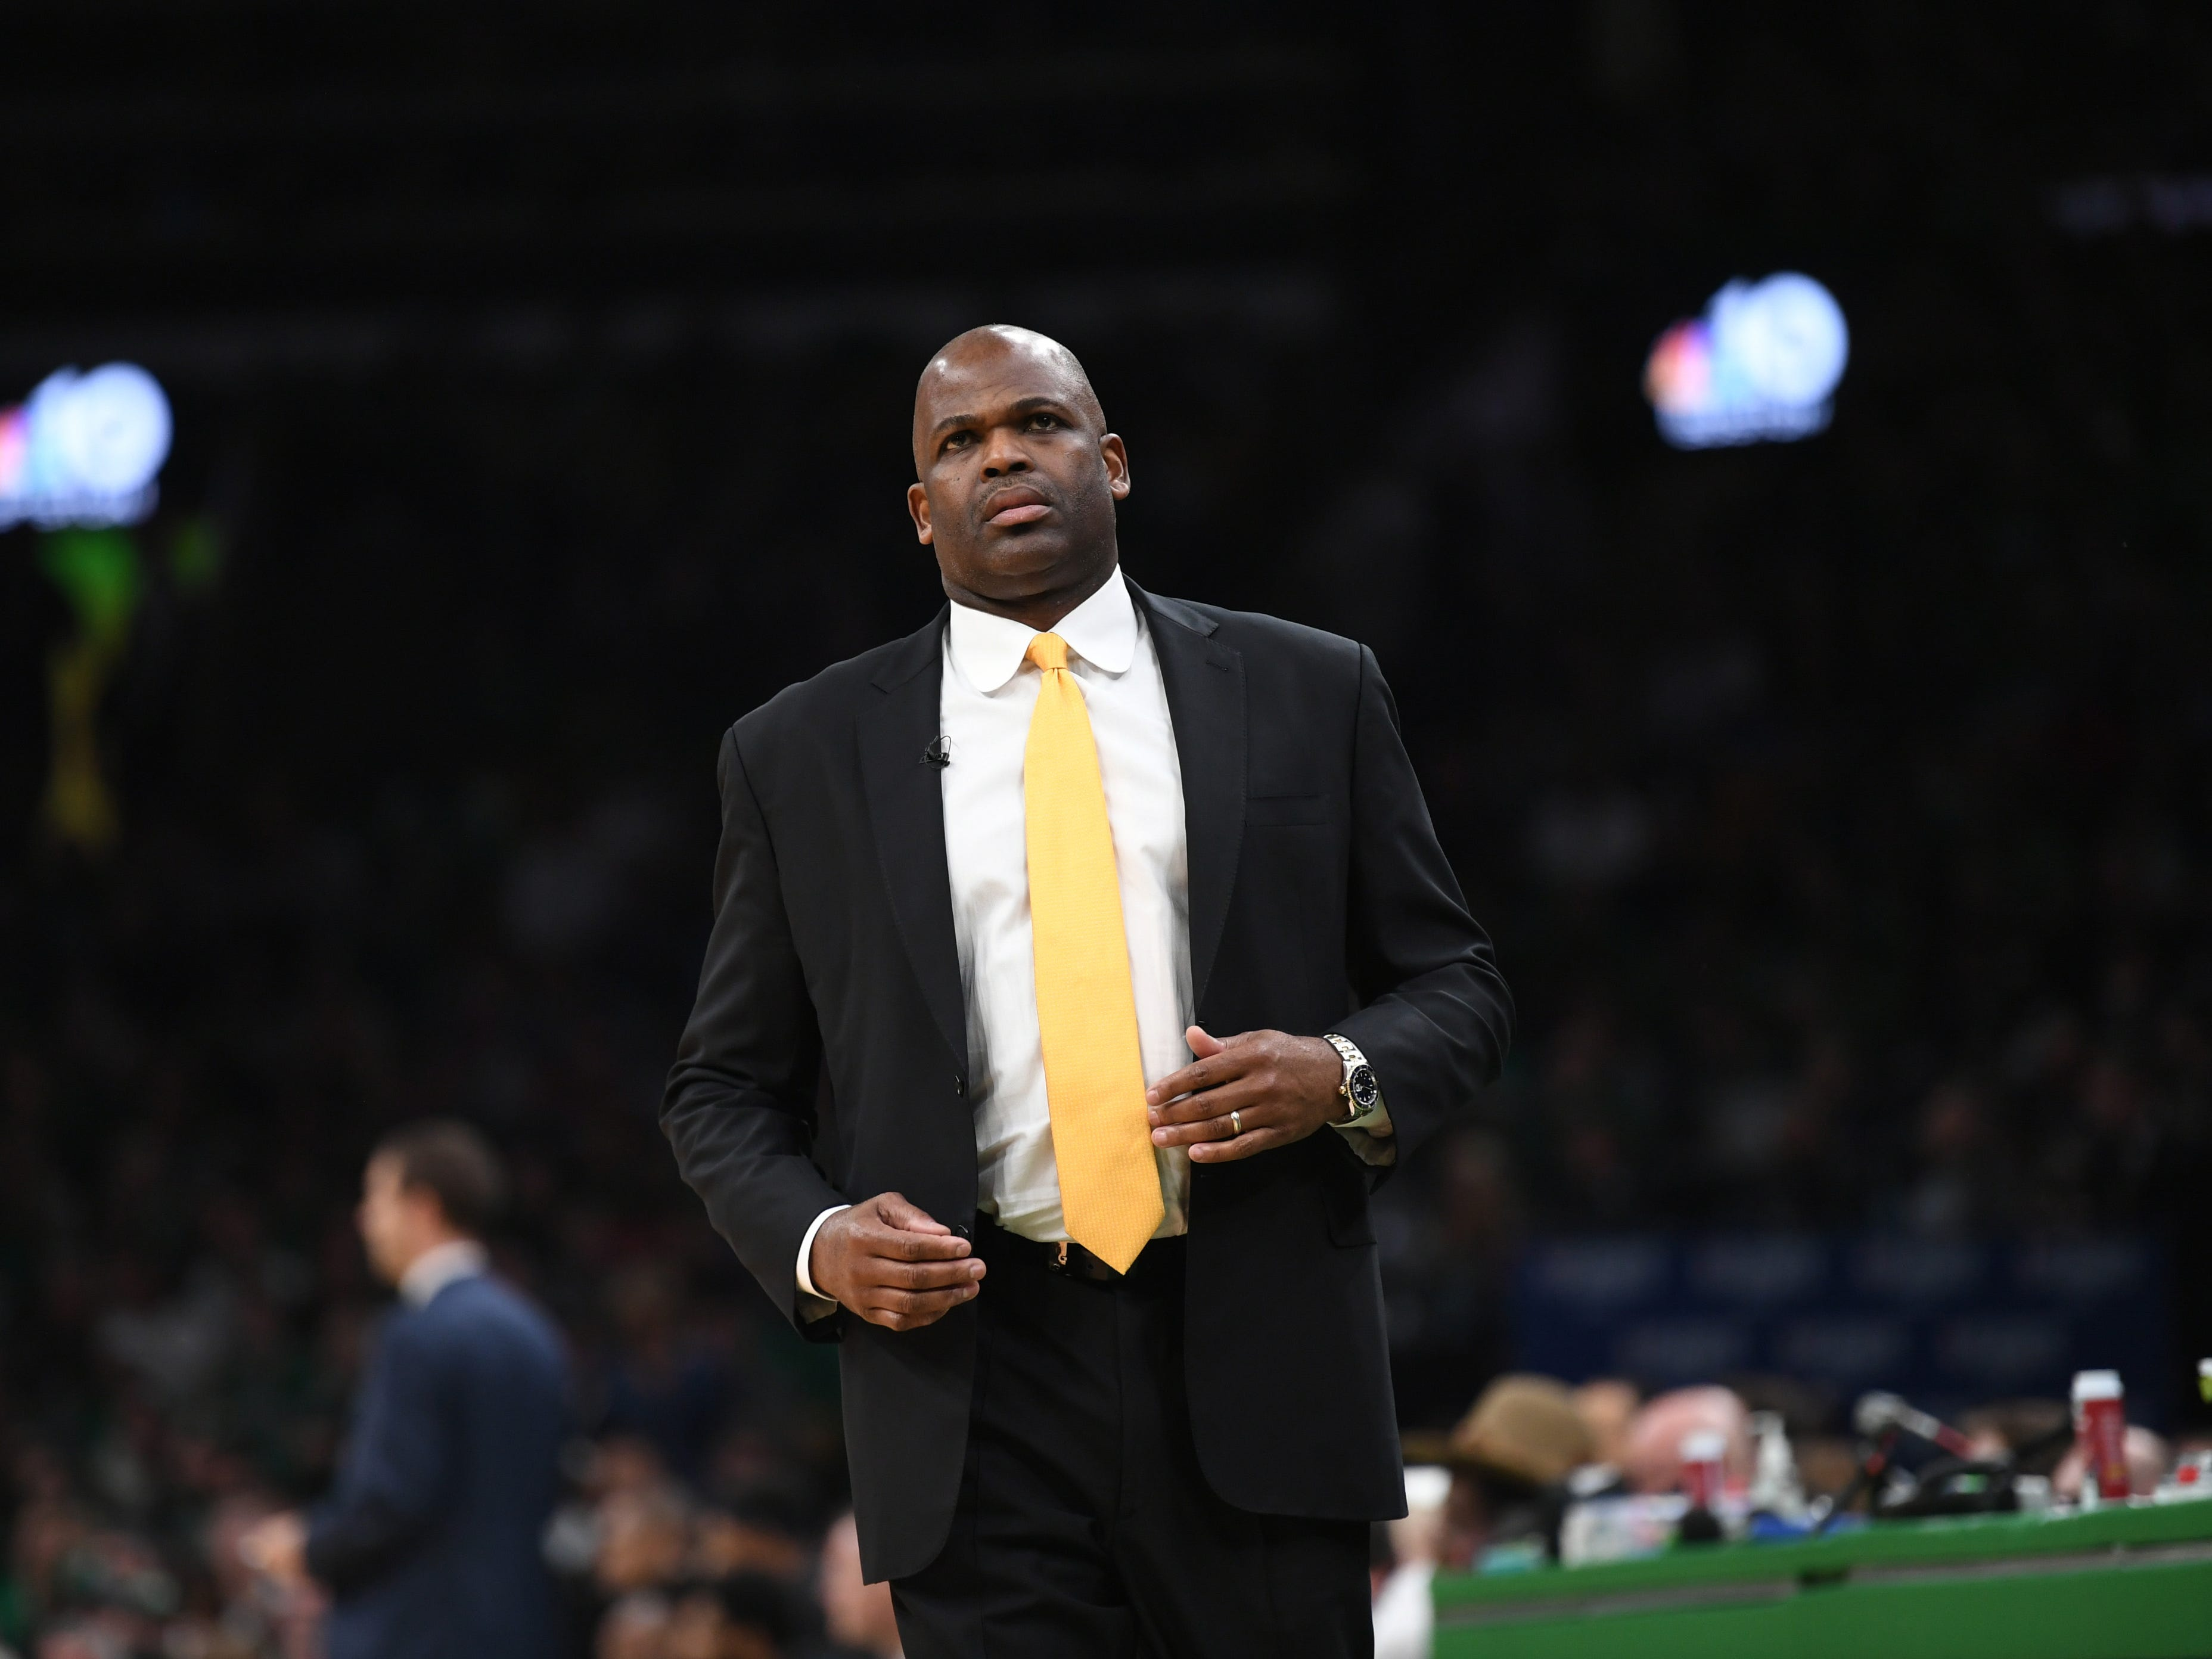 Apr 14, 2019; Boston, MA, USA; Indiana Pacers head coach Nate McMillan during the second half in game one of the first round of the 2019 NBA Playoffs against the Boston Celtics at TD Garden.